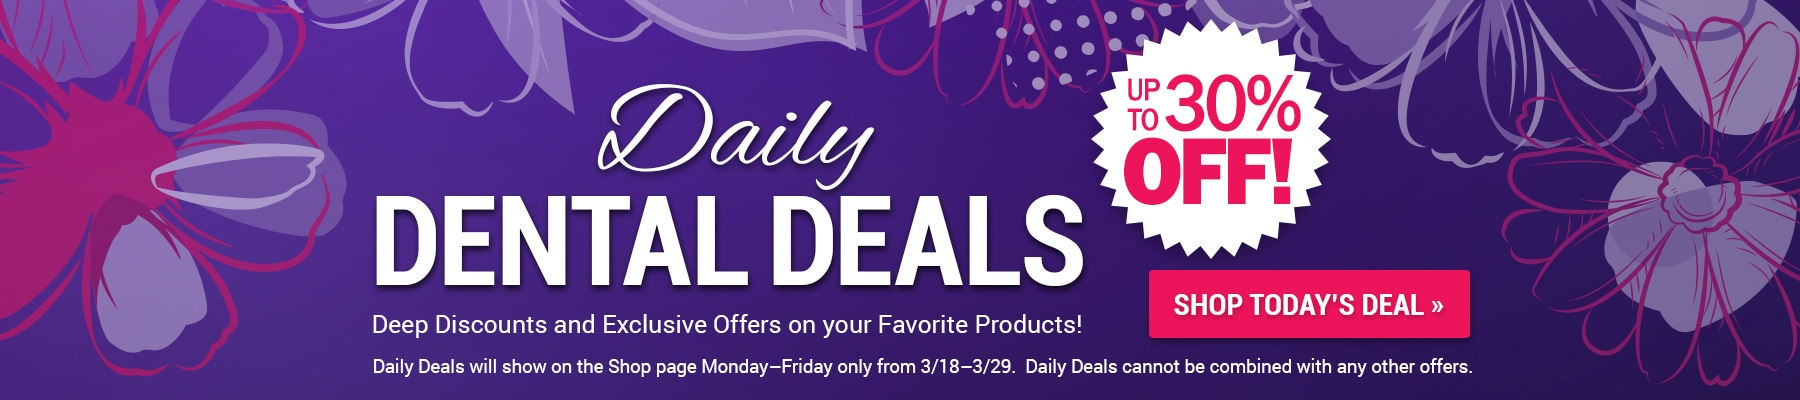 Daily Dental Deals!